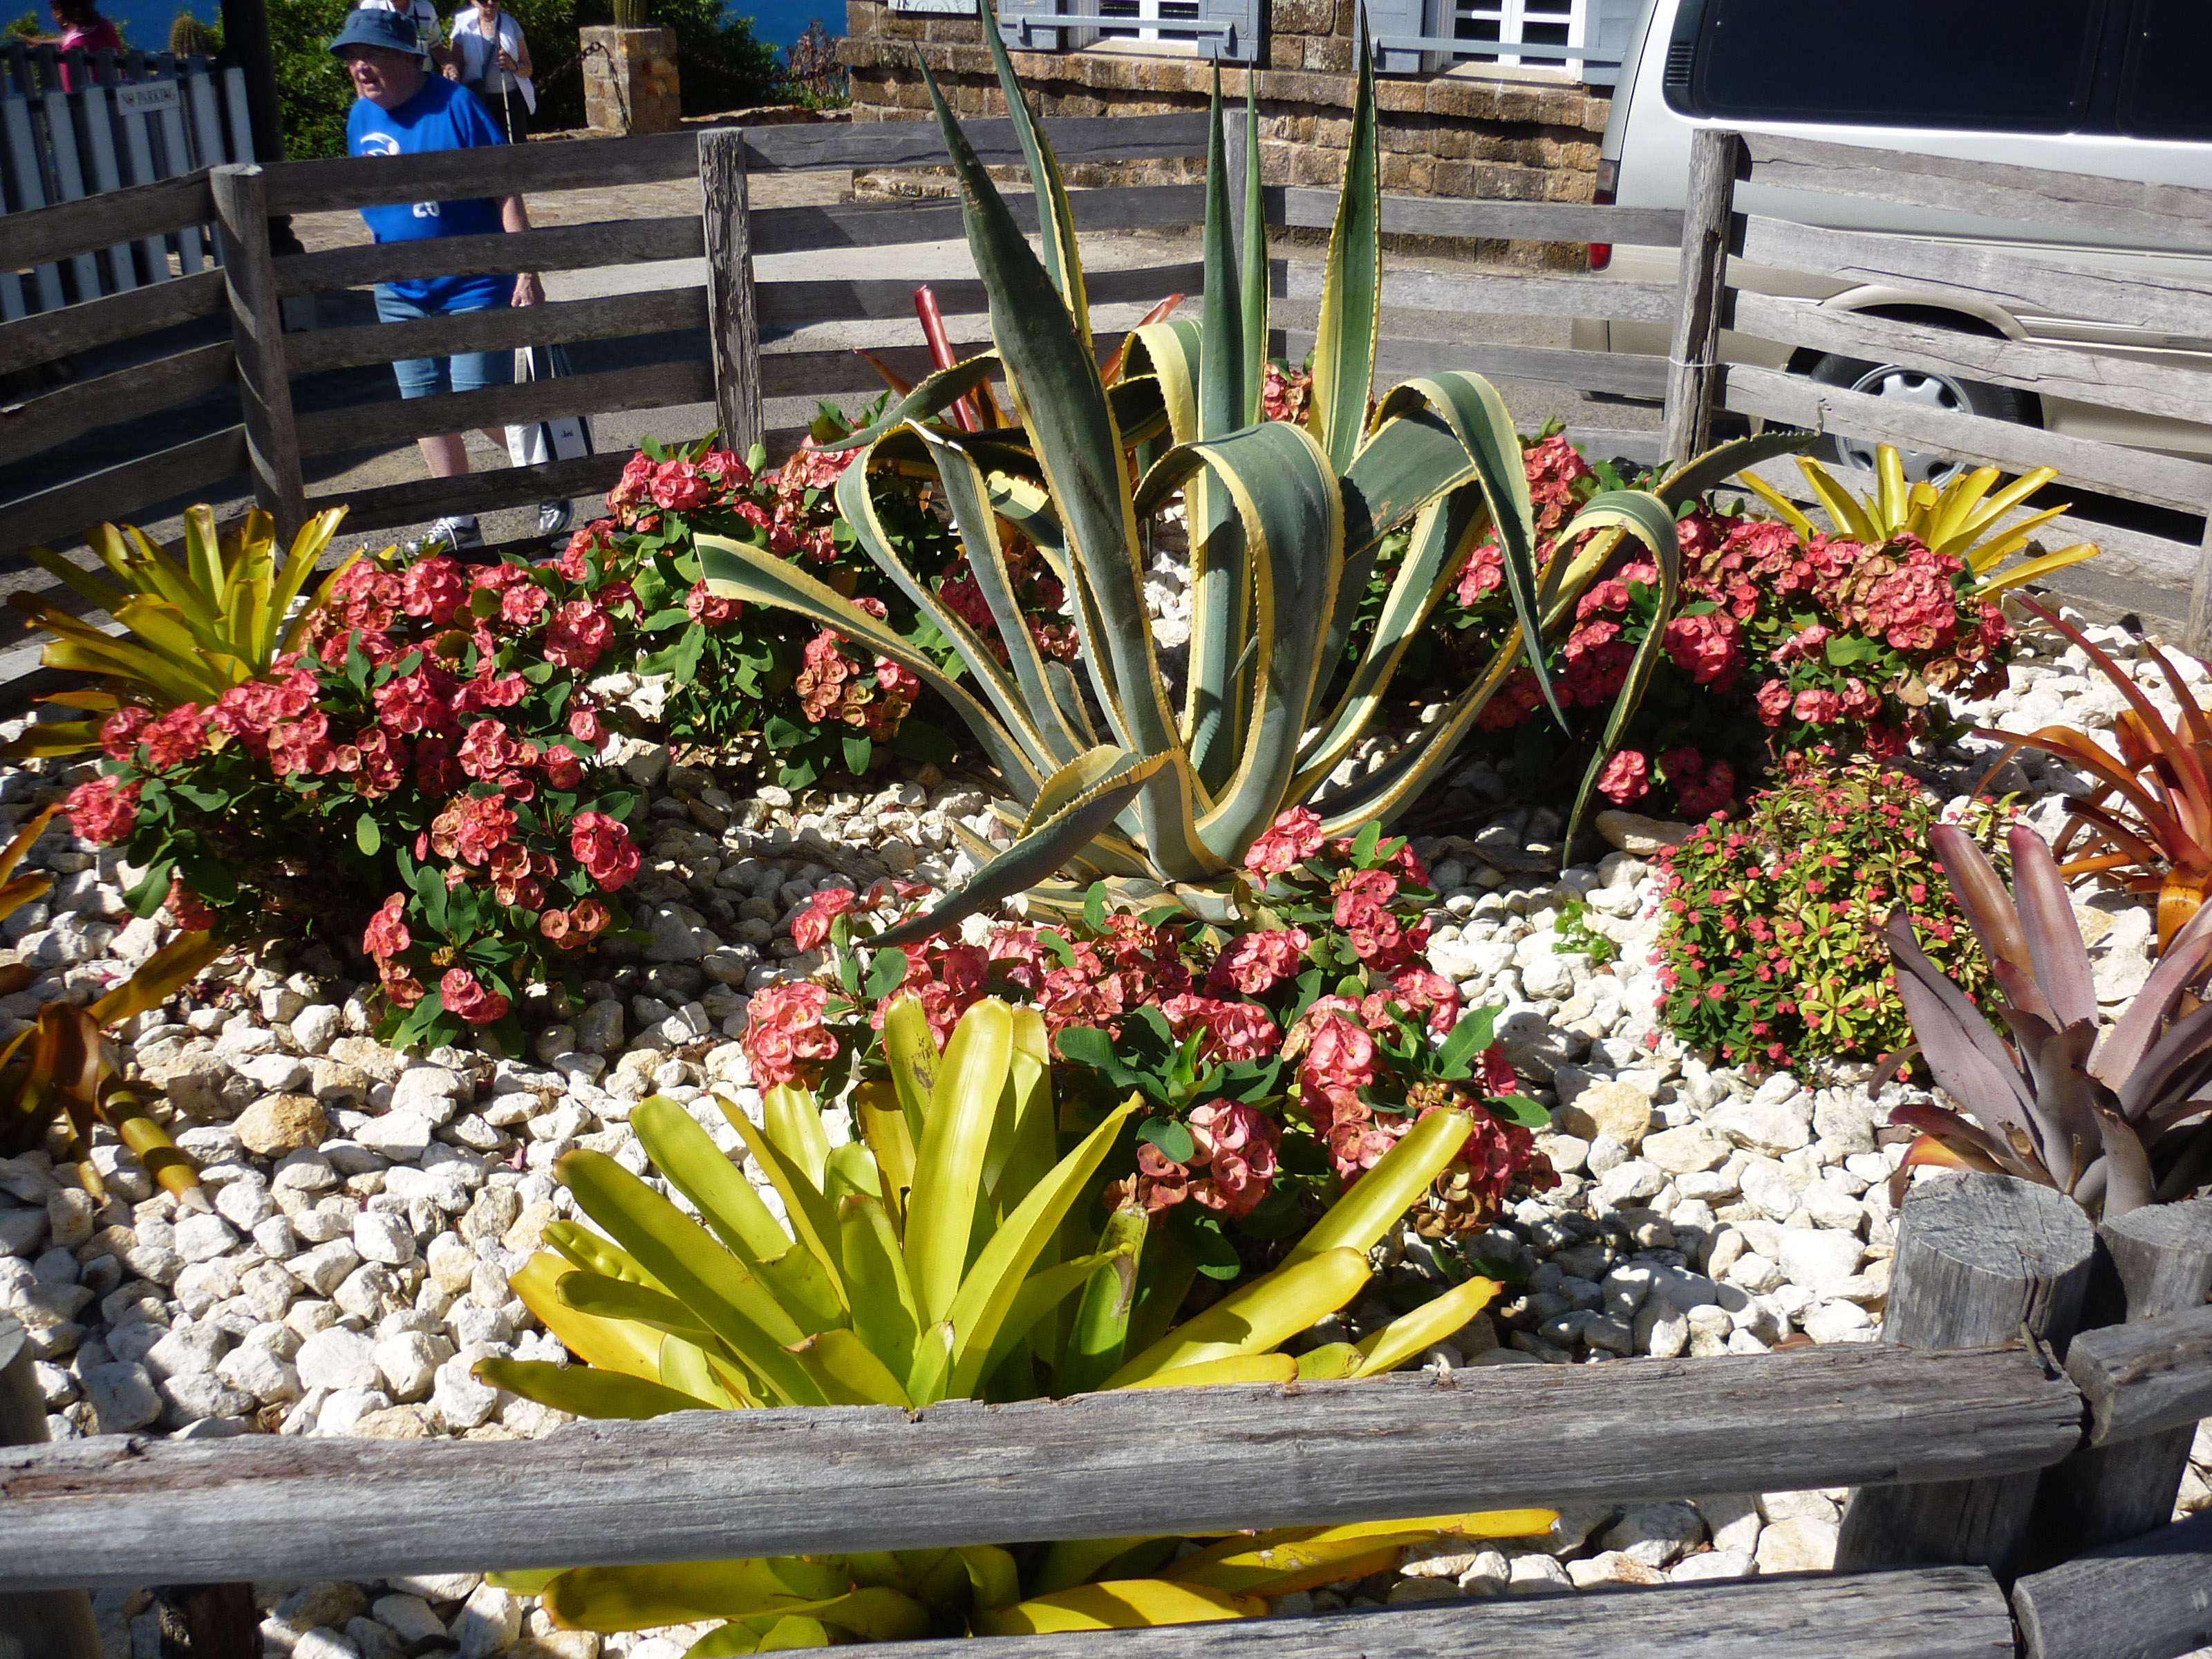 A Small Cactus Garden Stocked With A Variety Of Succulents